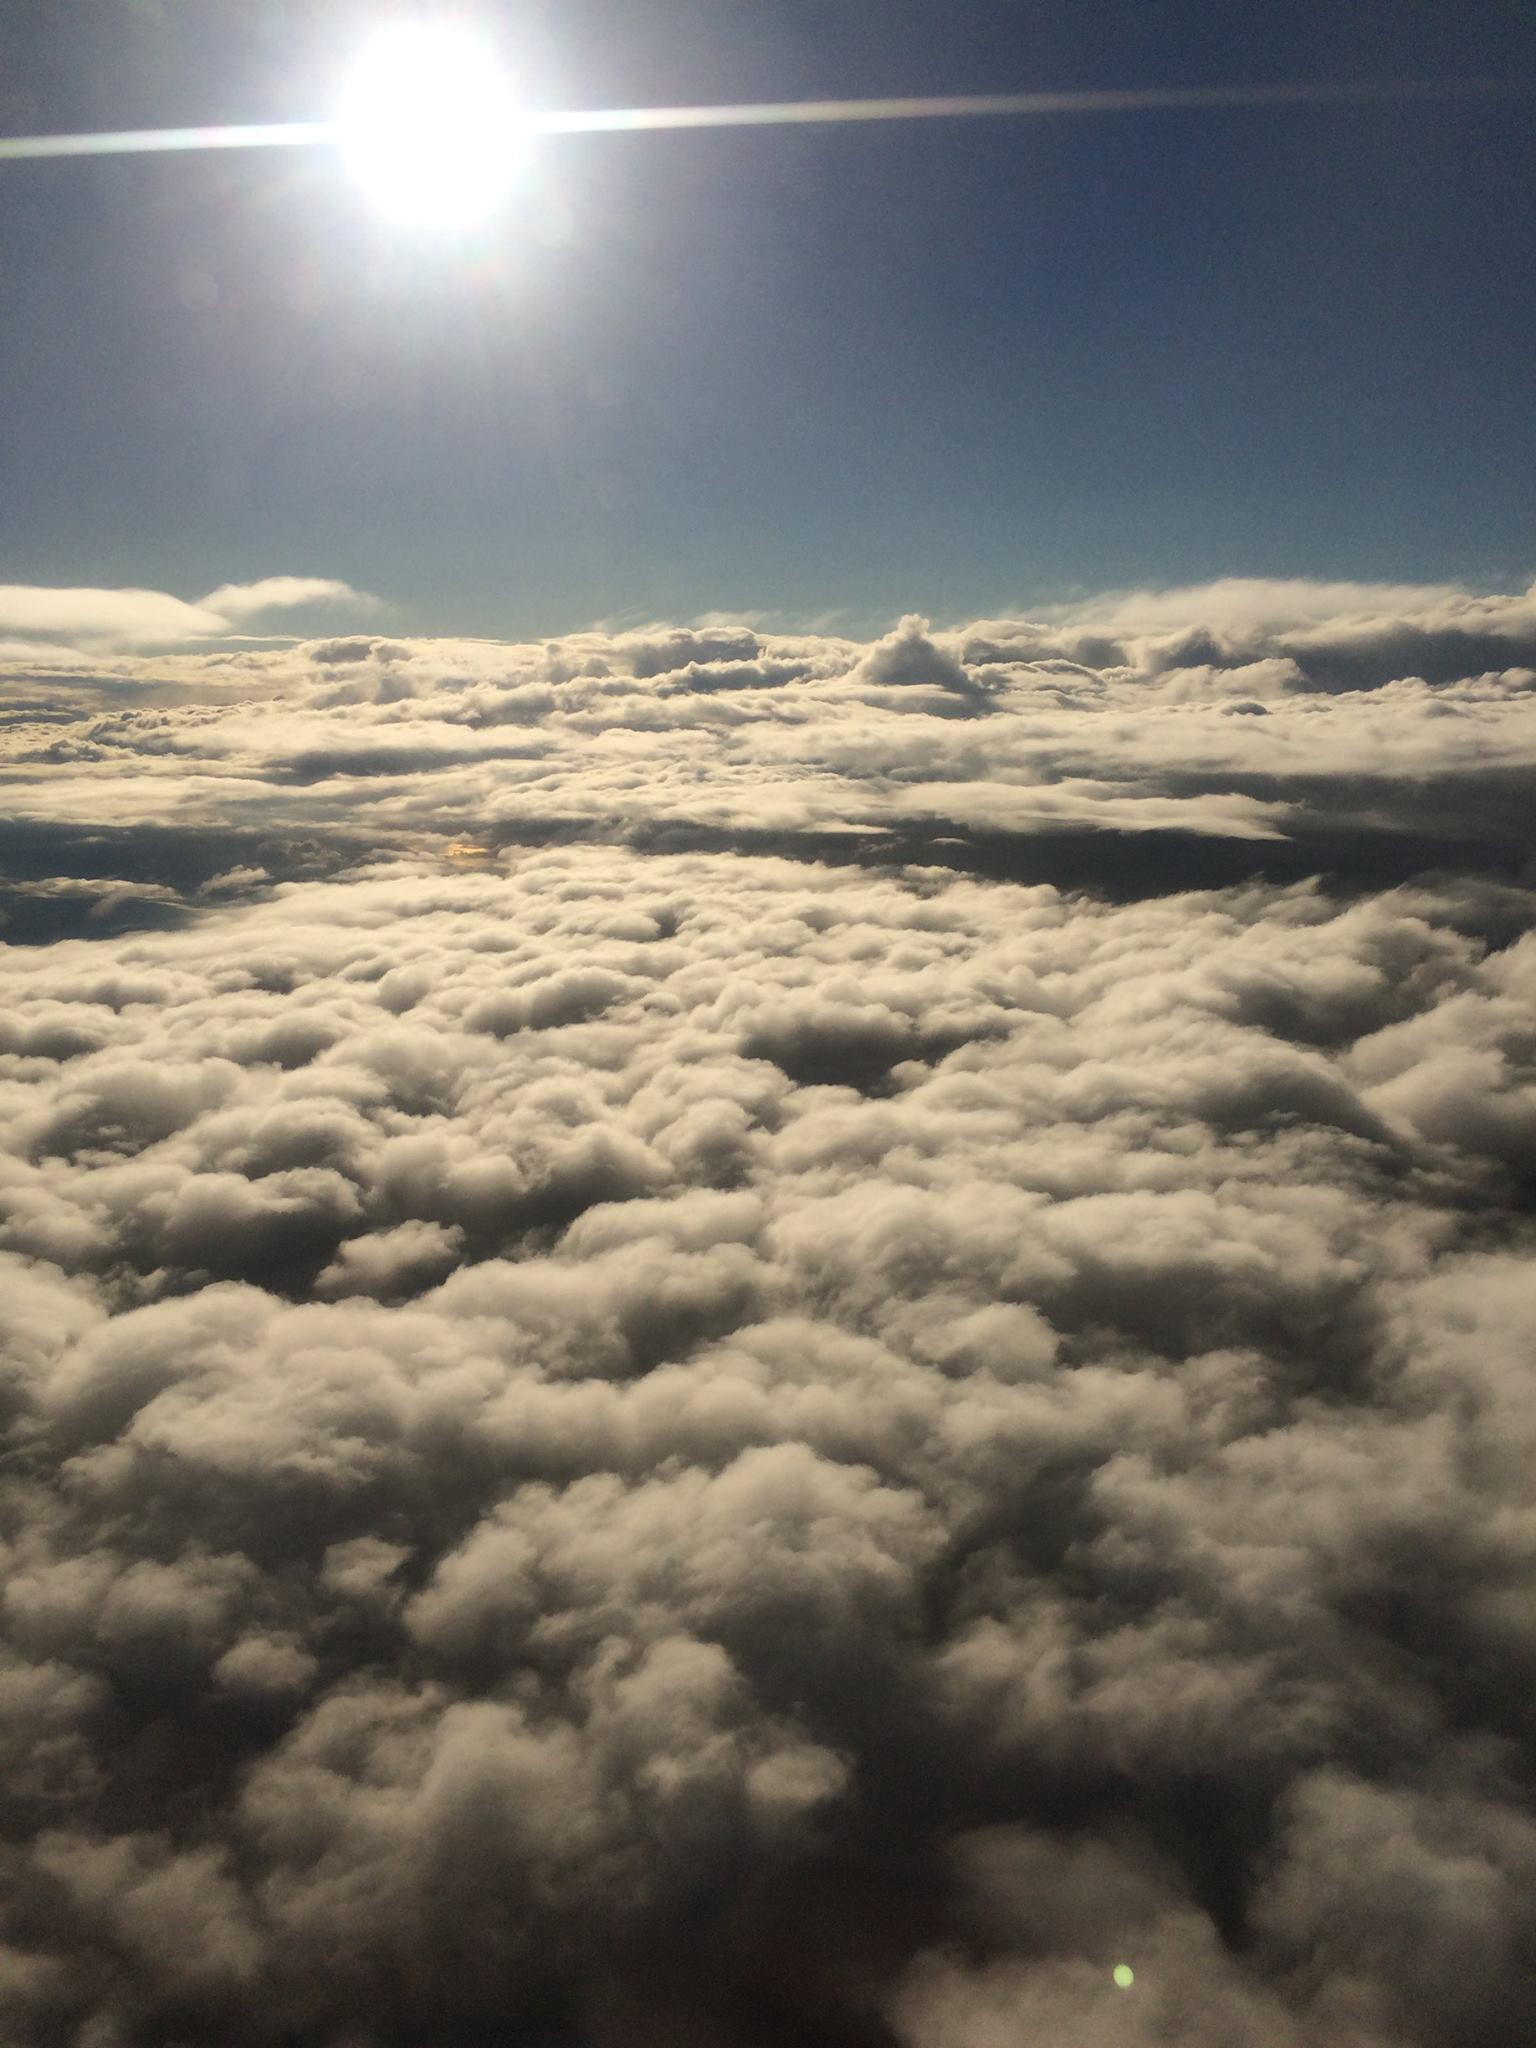 Clouds by Ching Ching